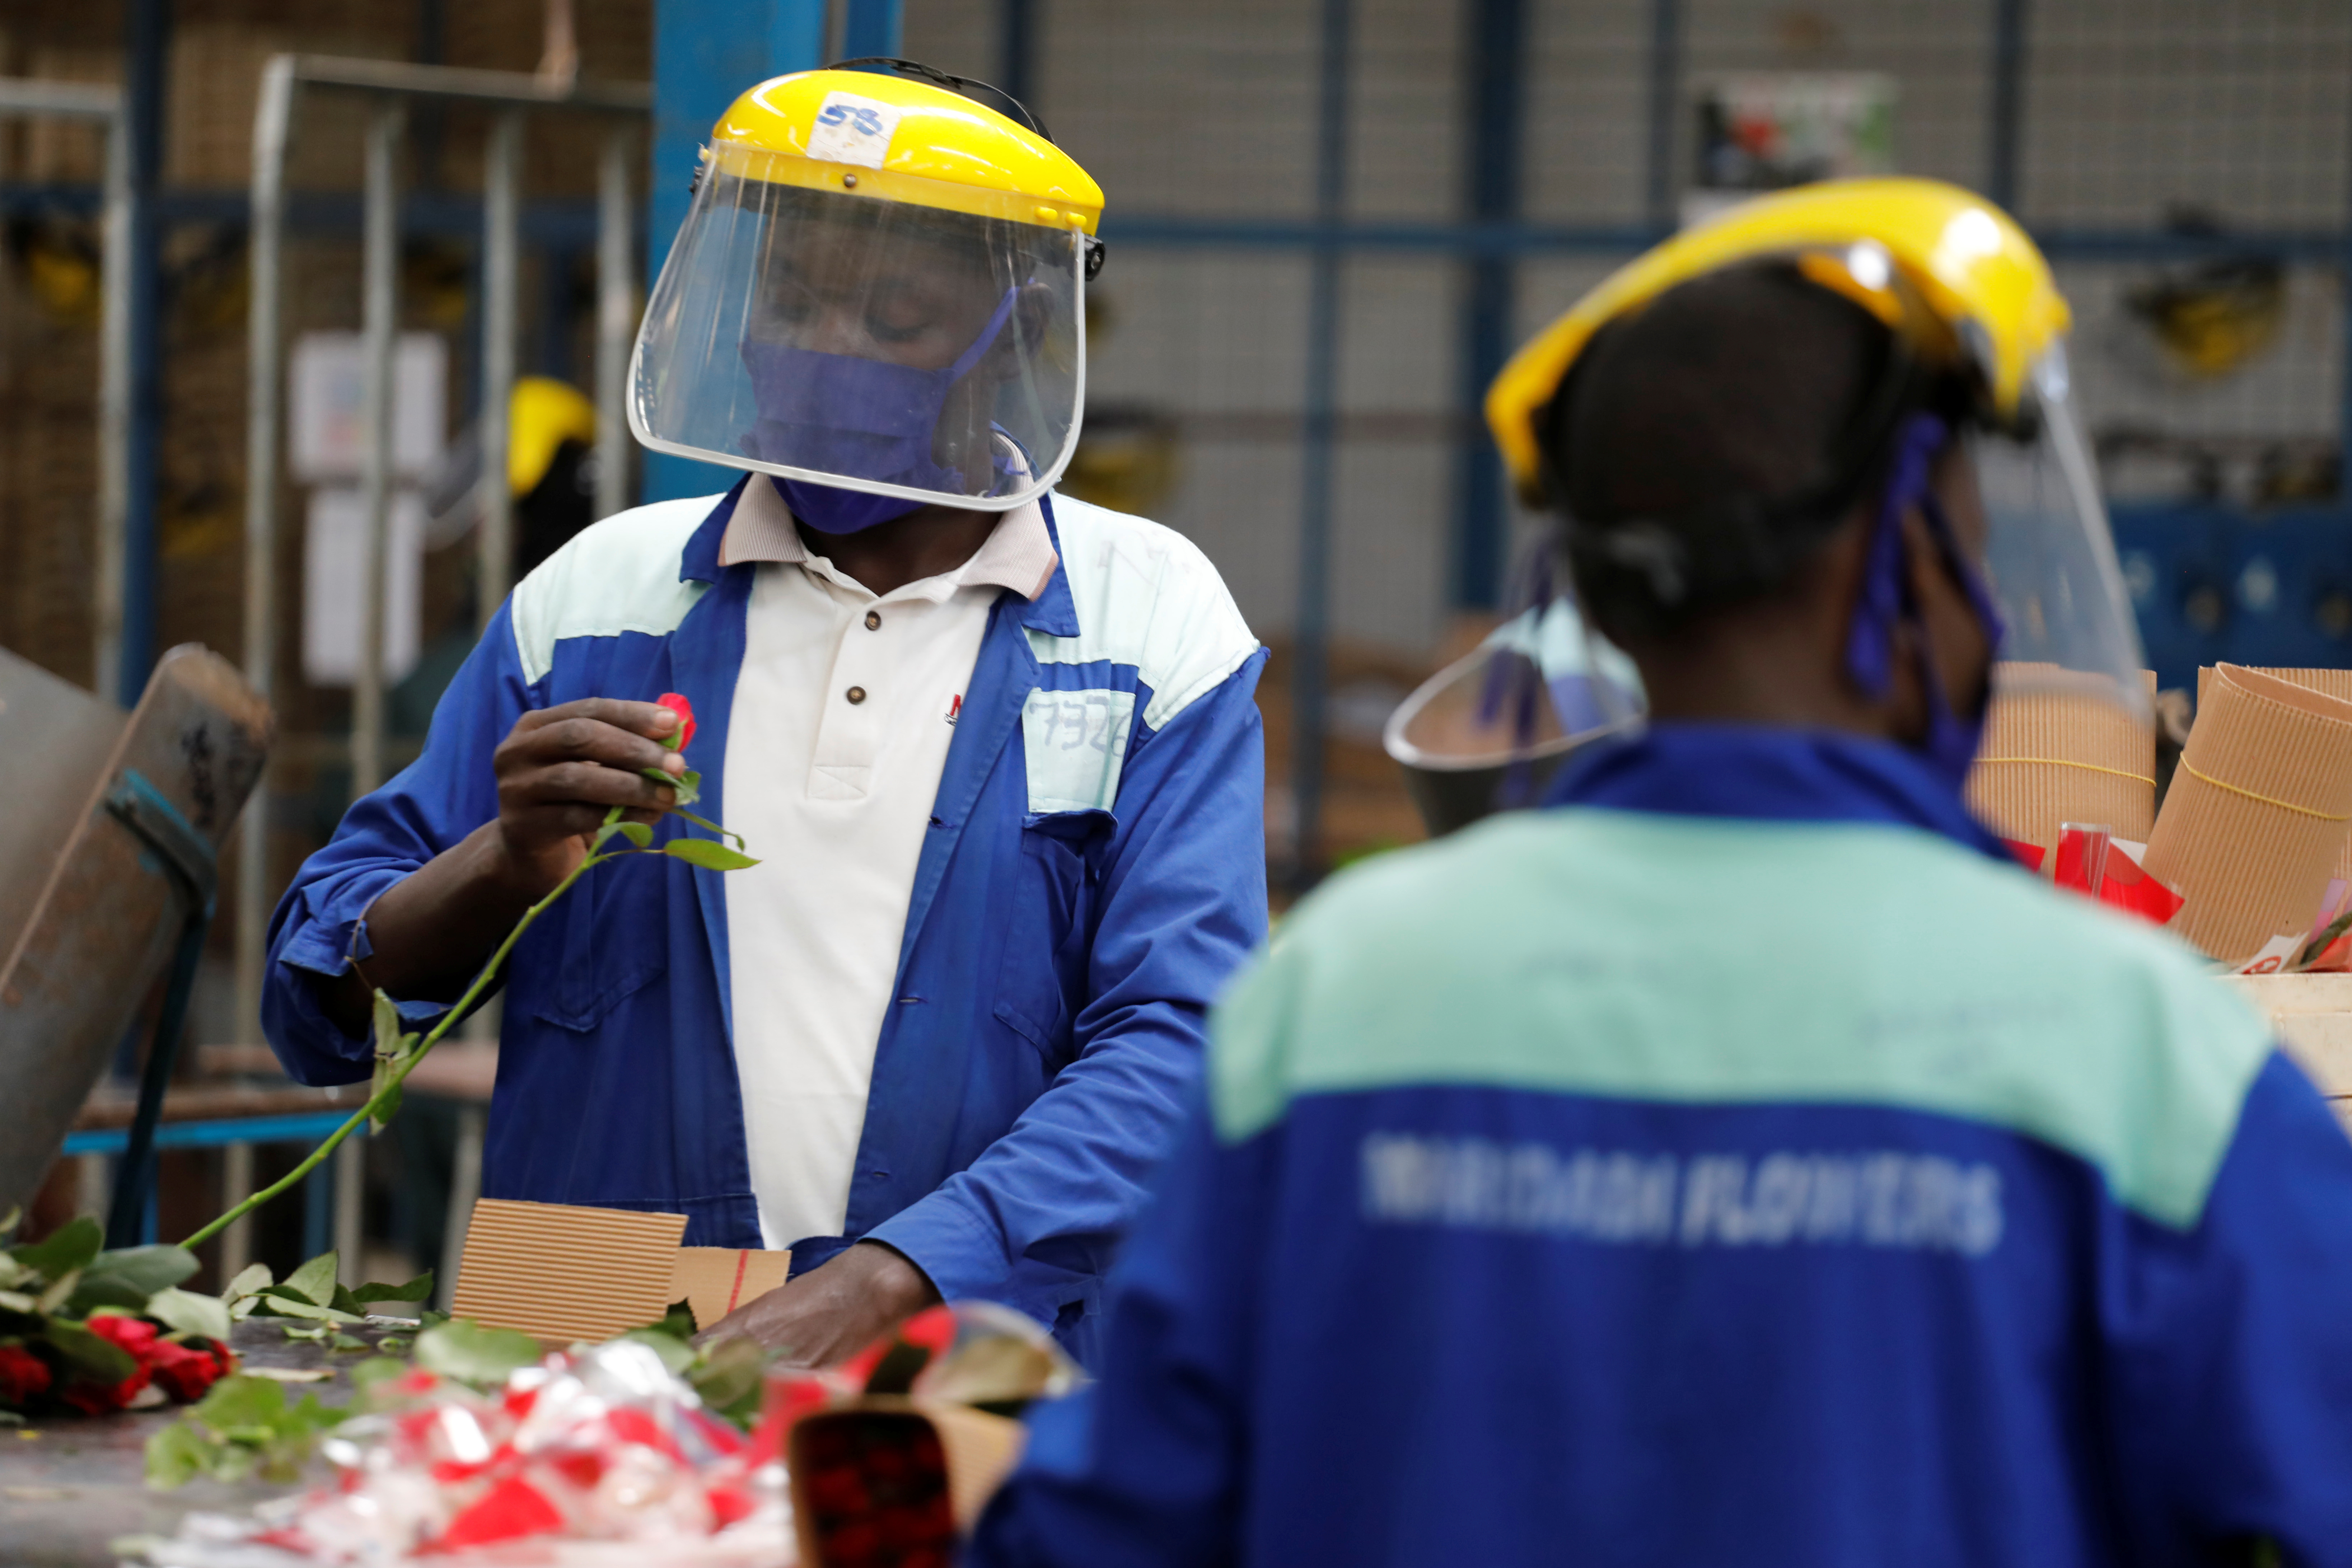 Workers sort roses on the packing line while wearing protective equipment to help fight against the spread of the coronavirus disease (COVID-19) at the Maridadi flower farm in Naivasha, Kenya, July 20, 2020. Picture taken July 20, 2020. REUTERS/Baz Ratner